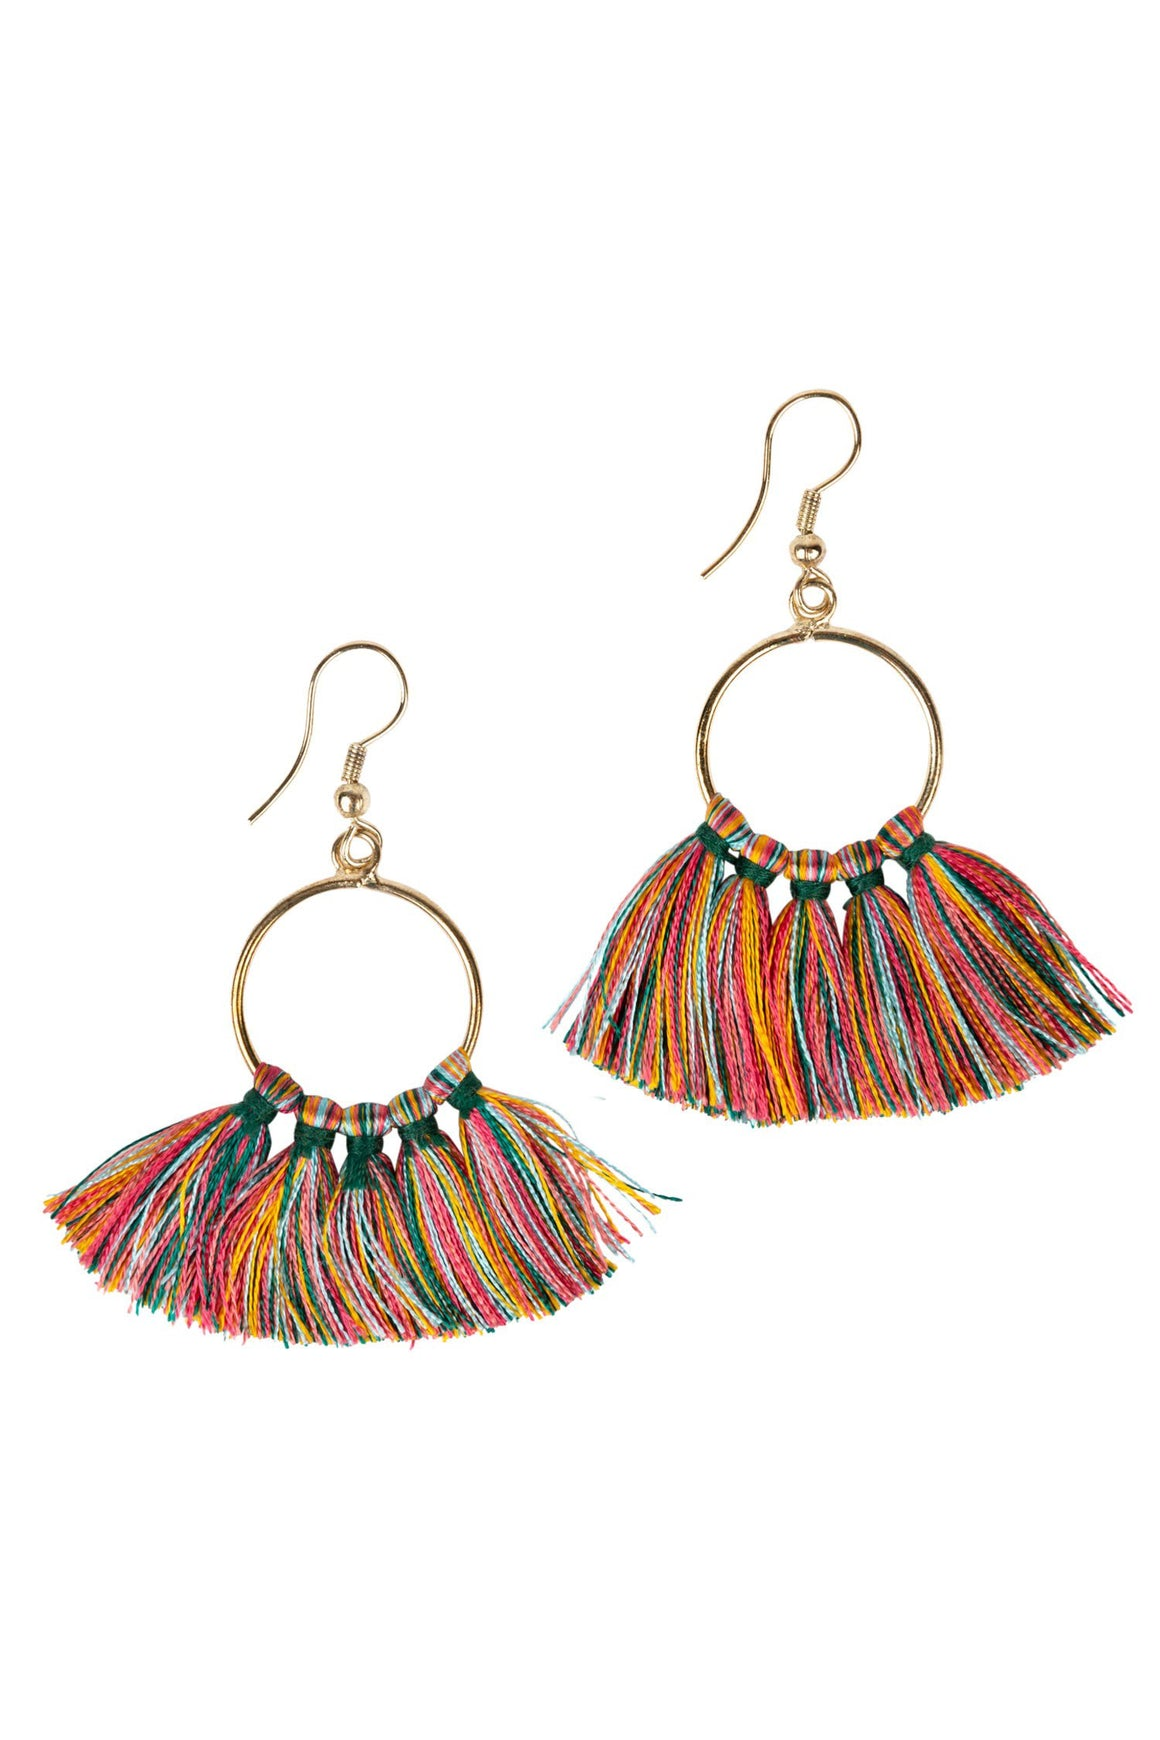 Friday Earrings